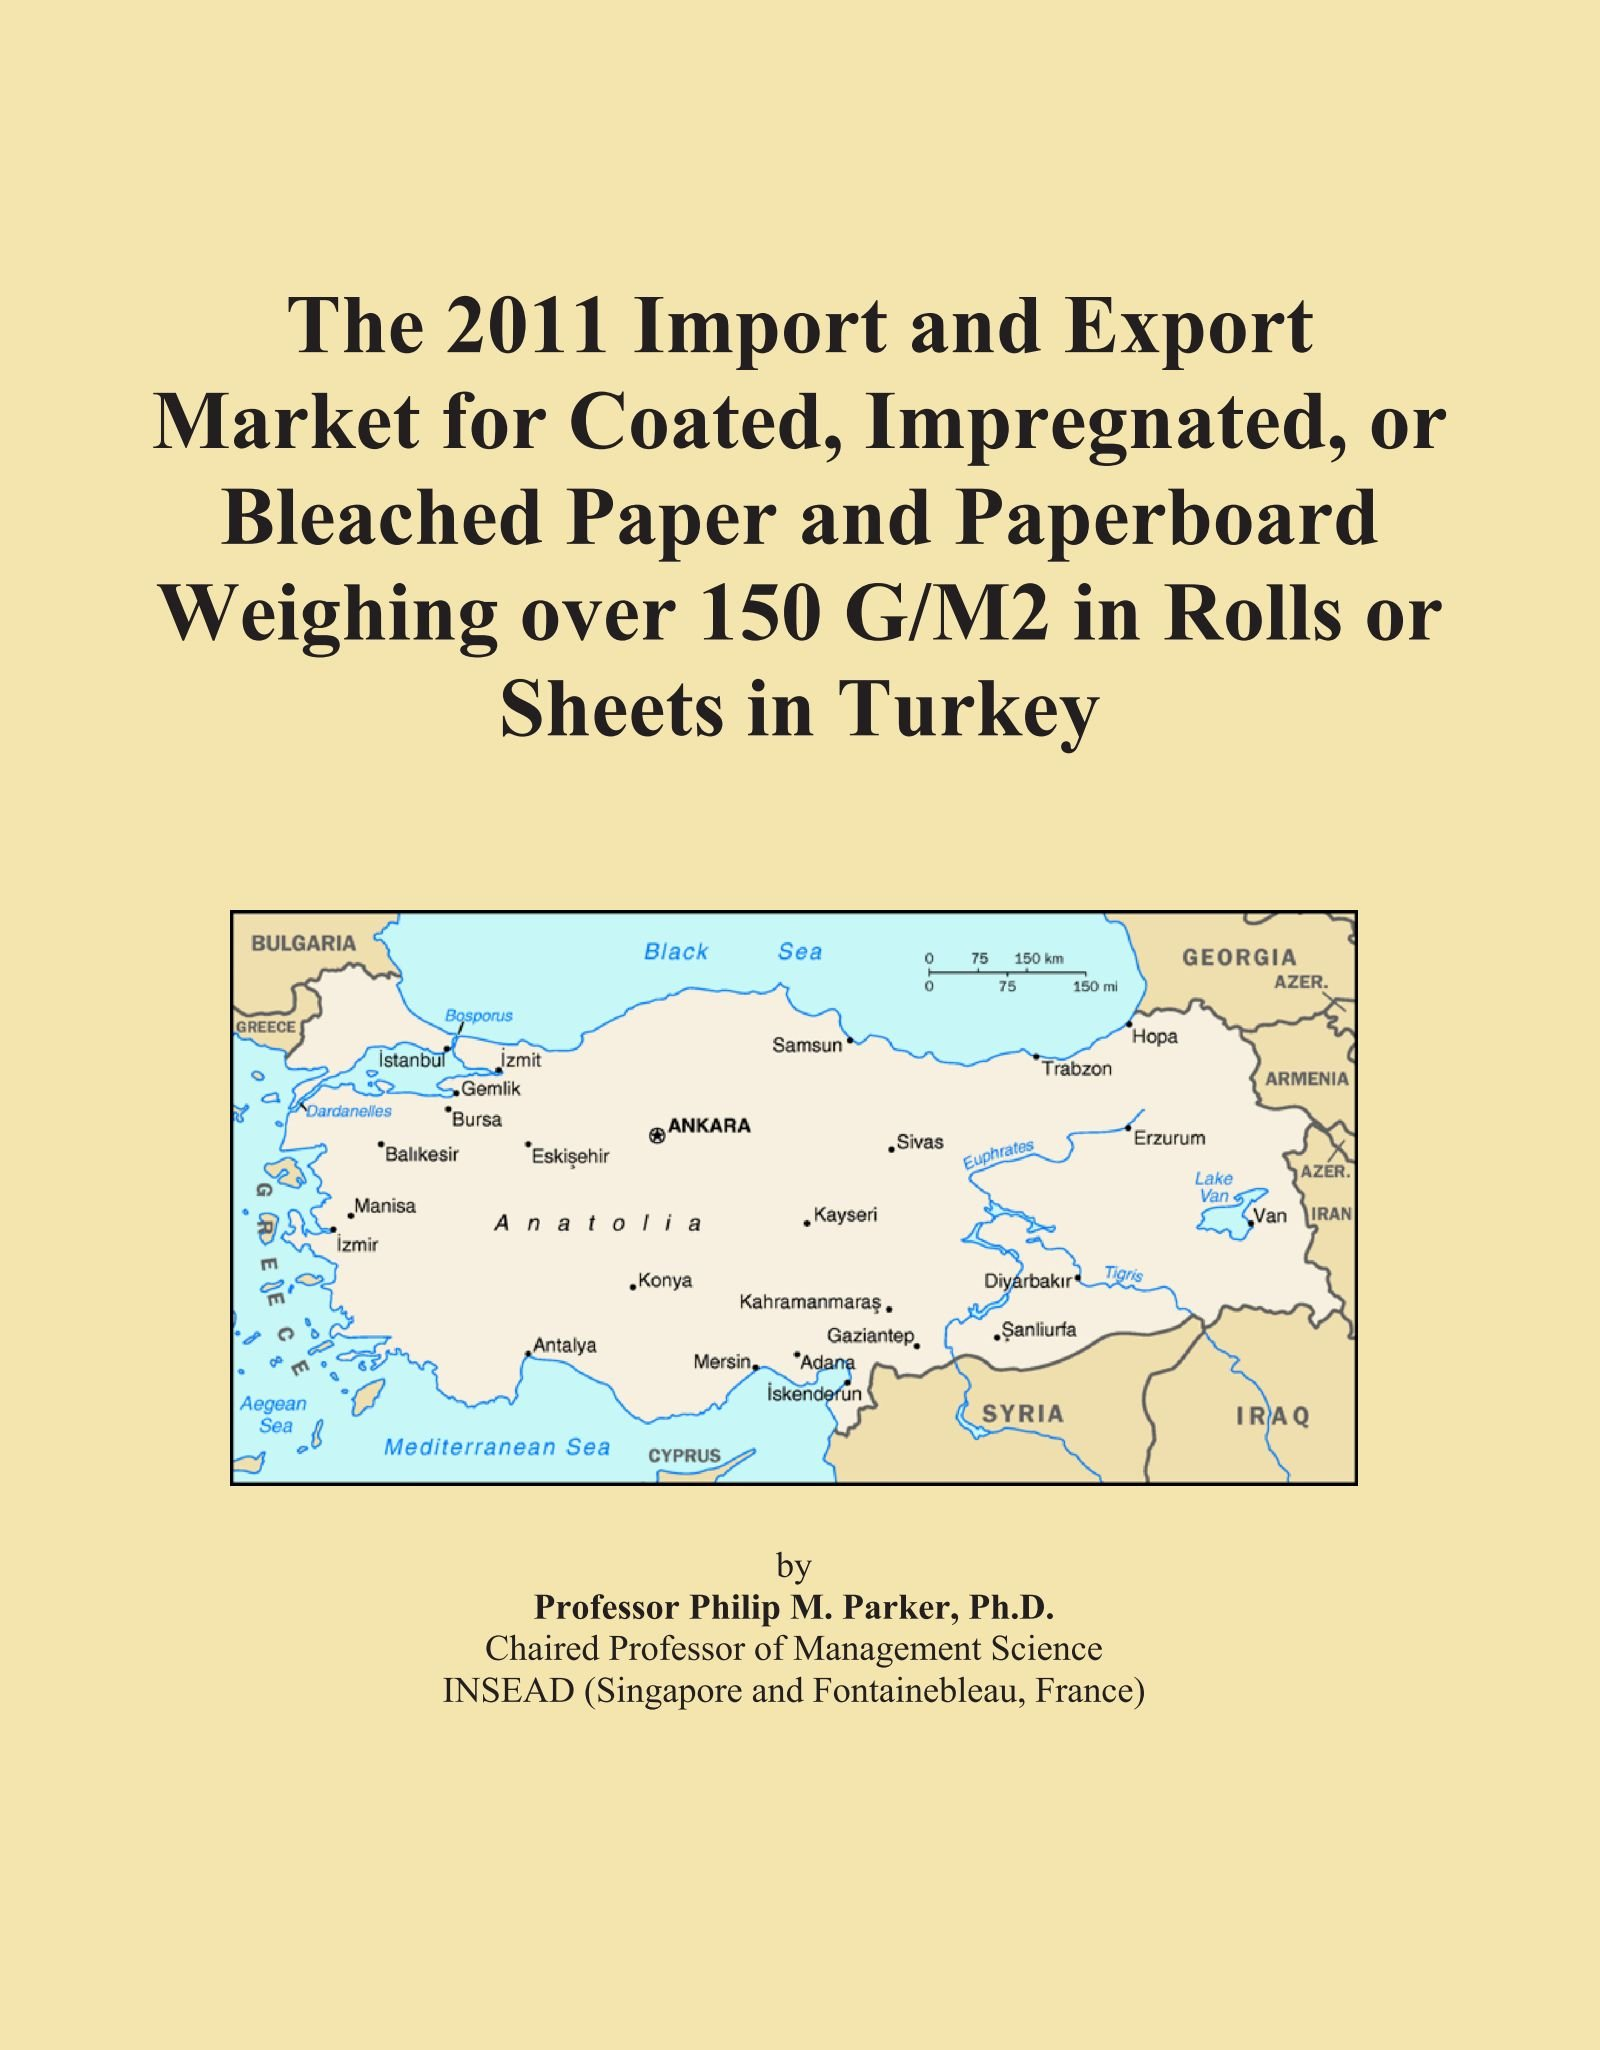 The 2011 Import and Export Market for Coated, Impregnated, or Bleached Paper and Paperboard Weighing over 150 G/M2 in Rolls or Sheets in Turkey PDF